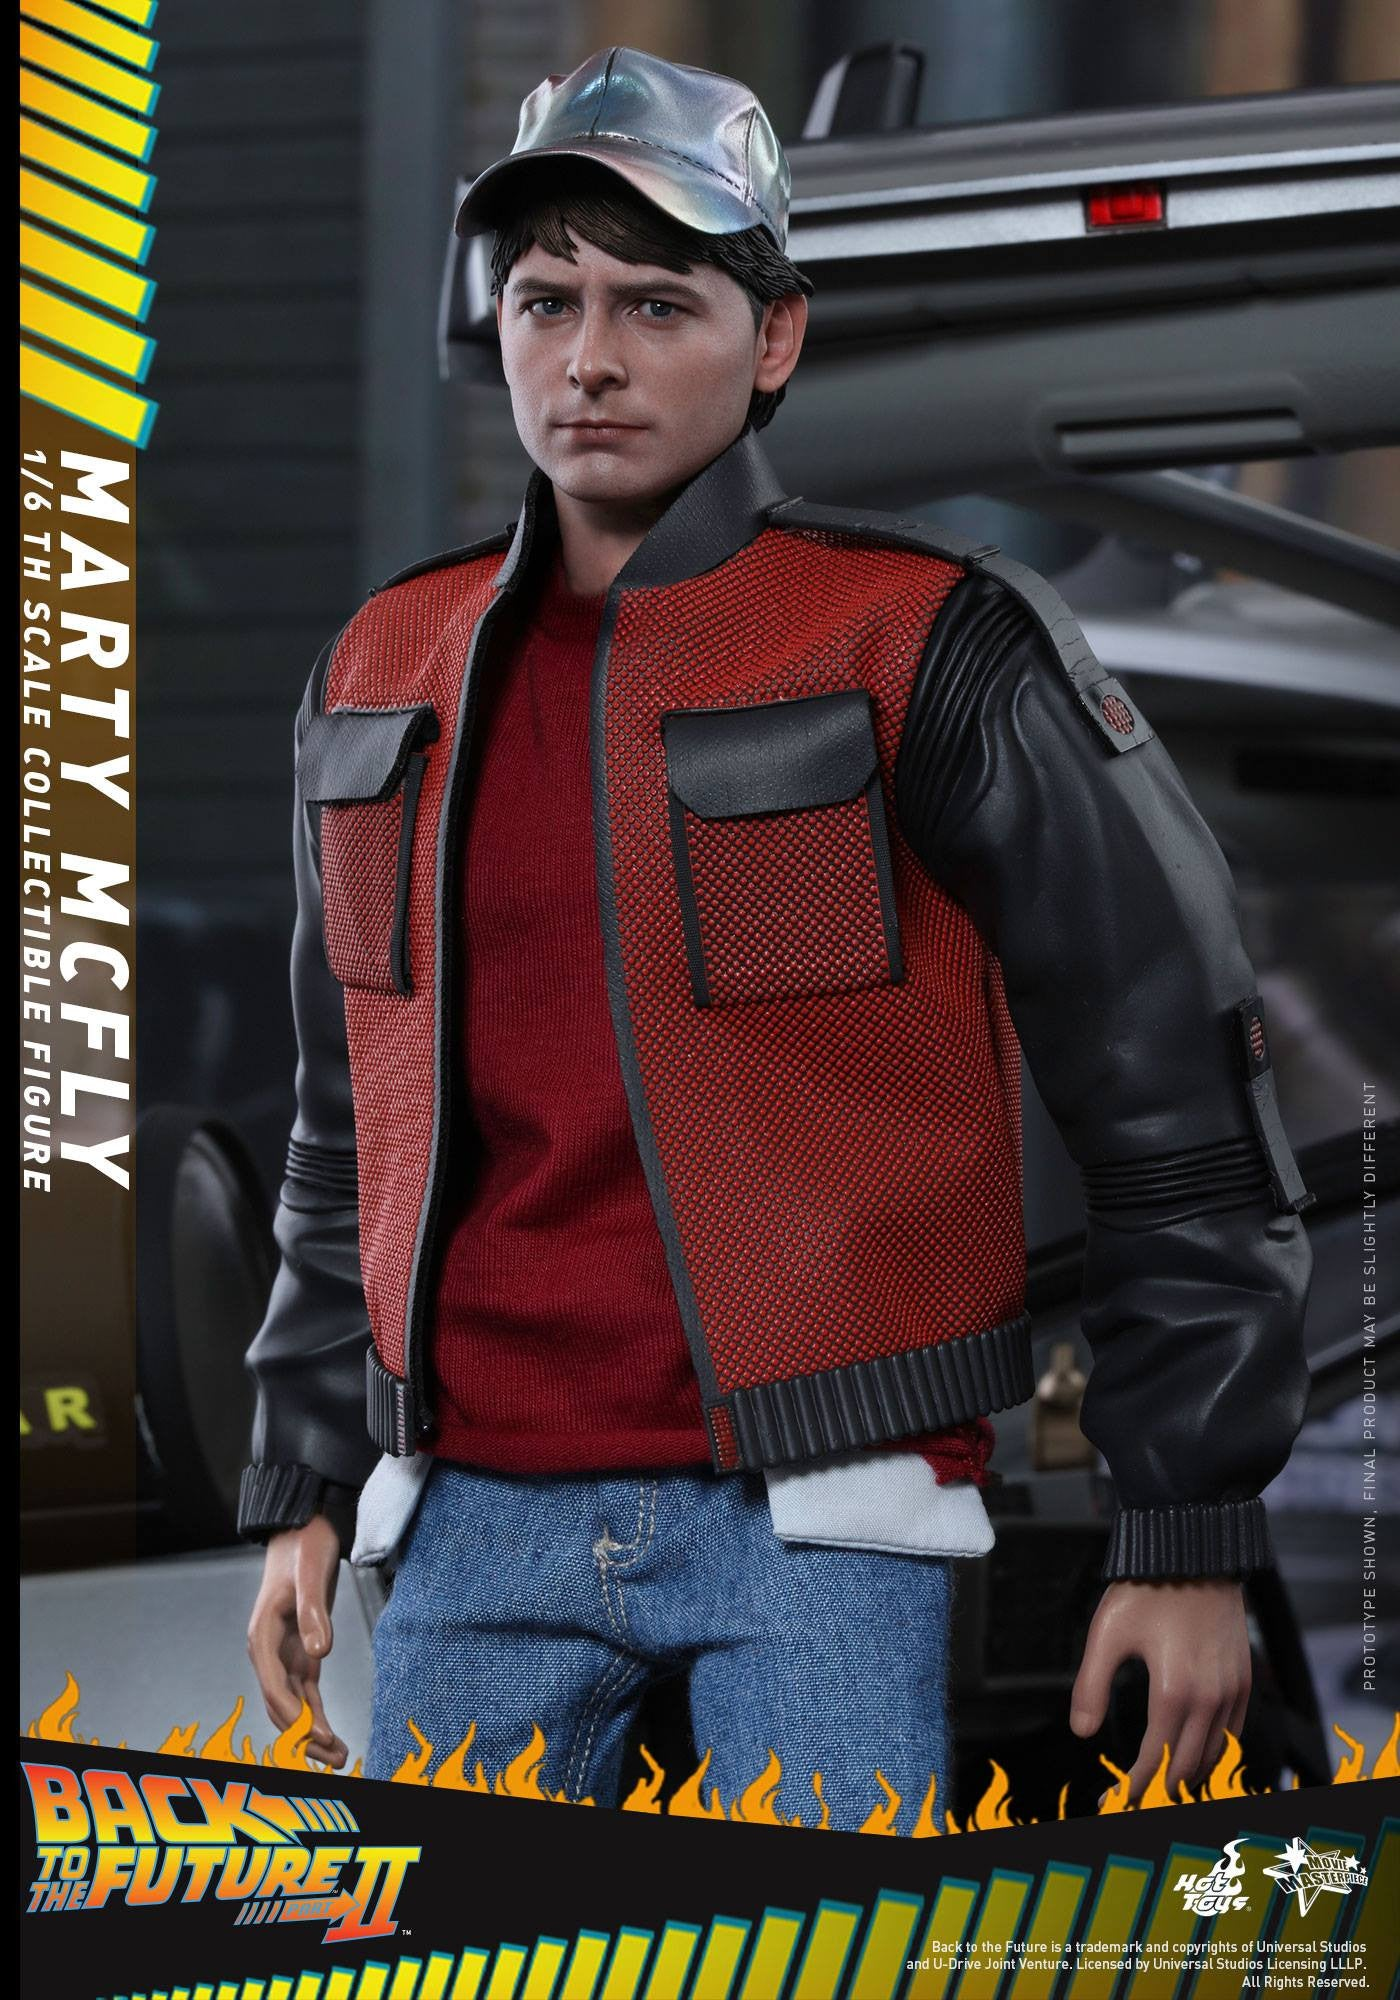 Hot Toys - MMS379 - Back to The Future Part II - Marty McFly (Normal Edition) - Marvelous Toys - 19